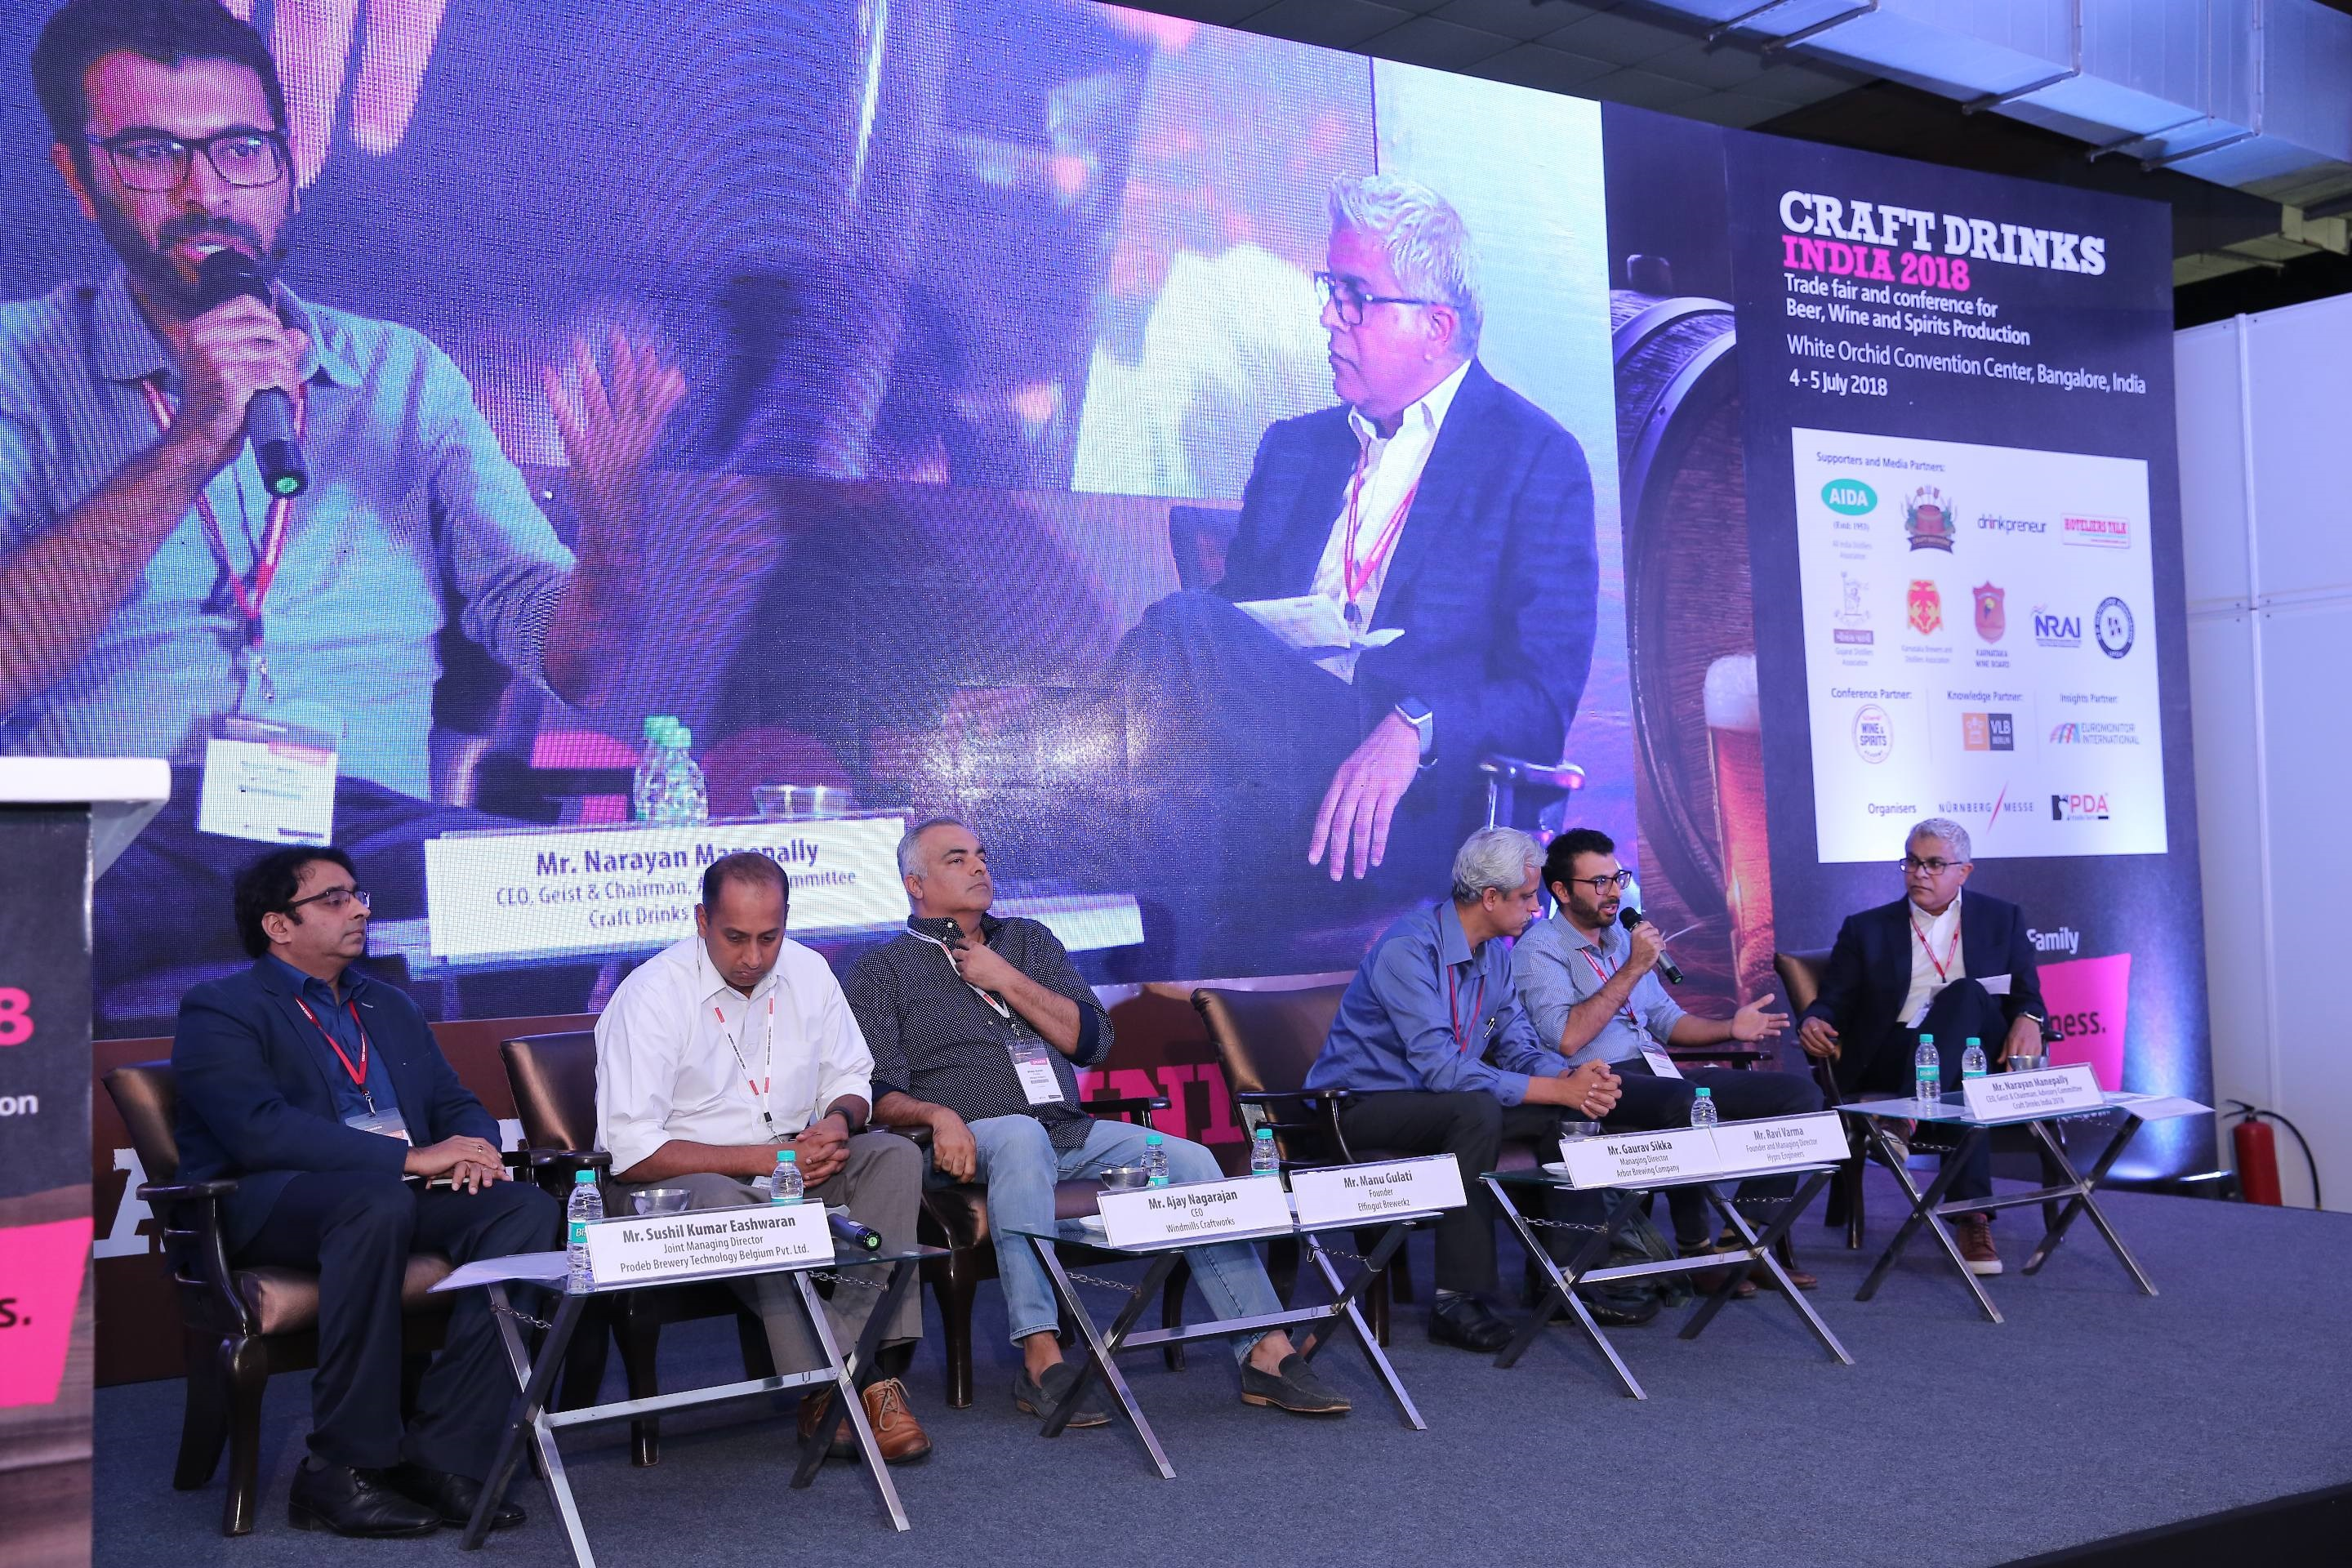 Craft Drinks India 2019 | The Beer Connoisseur